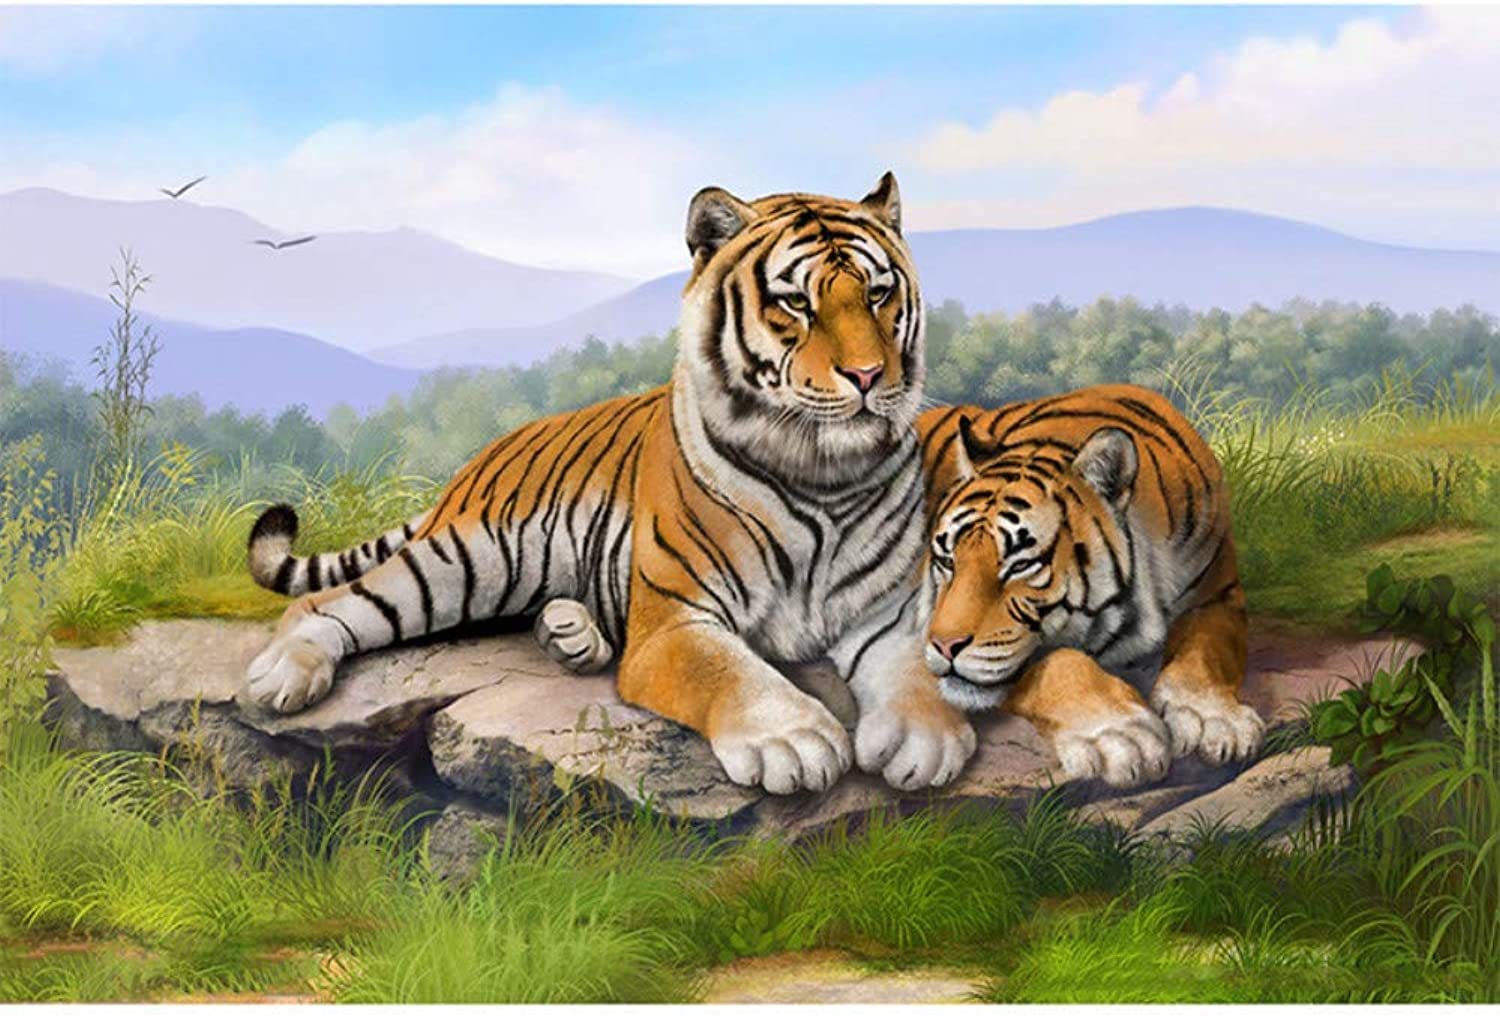 Xhabb 5D DIY Diamond Painting Living Room Decorative Painting Diamond Painting Tigers 5D Full Diamond Cross Stitch 30X45Cm